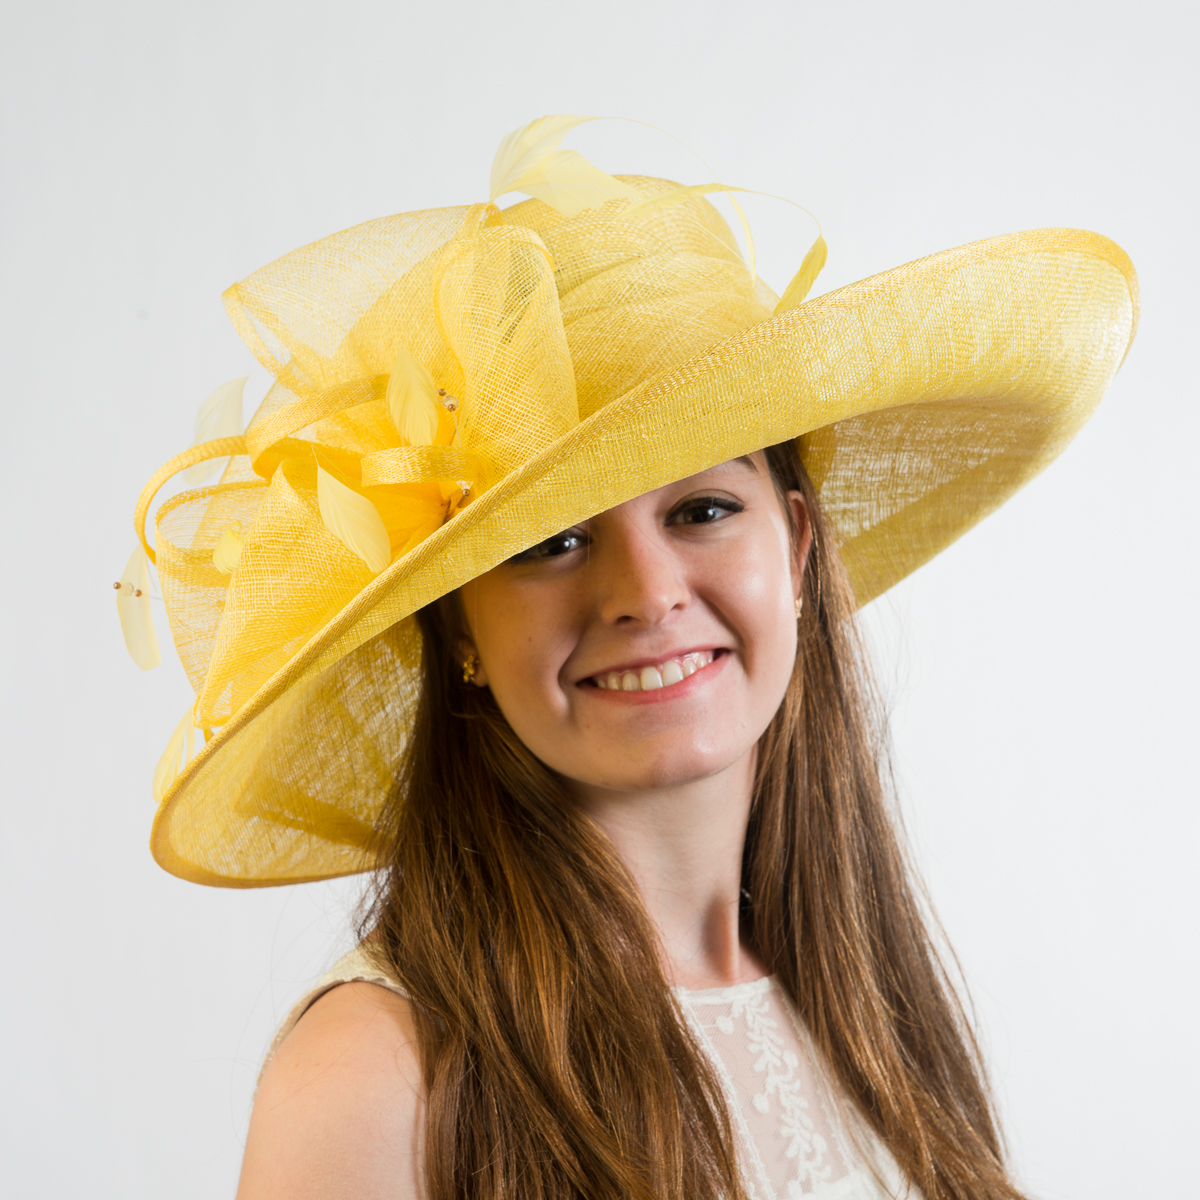 Yellow Large Off Face Sinamay Hat 102571 Yl Sun Yorkos Kakyco